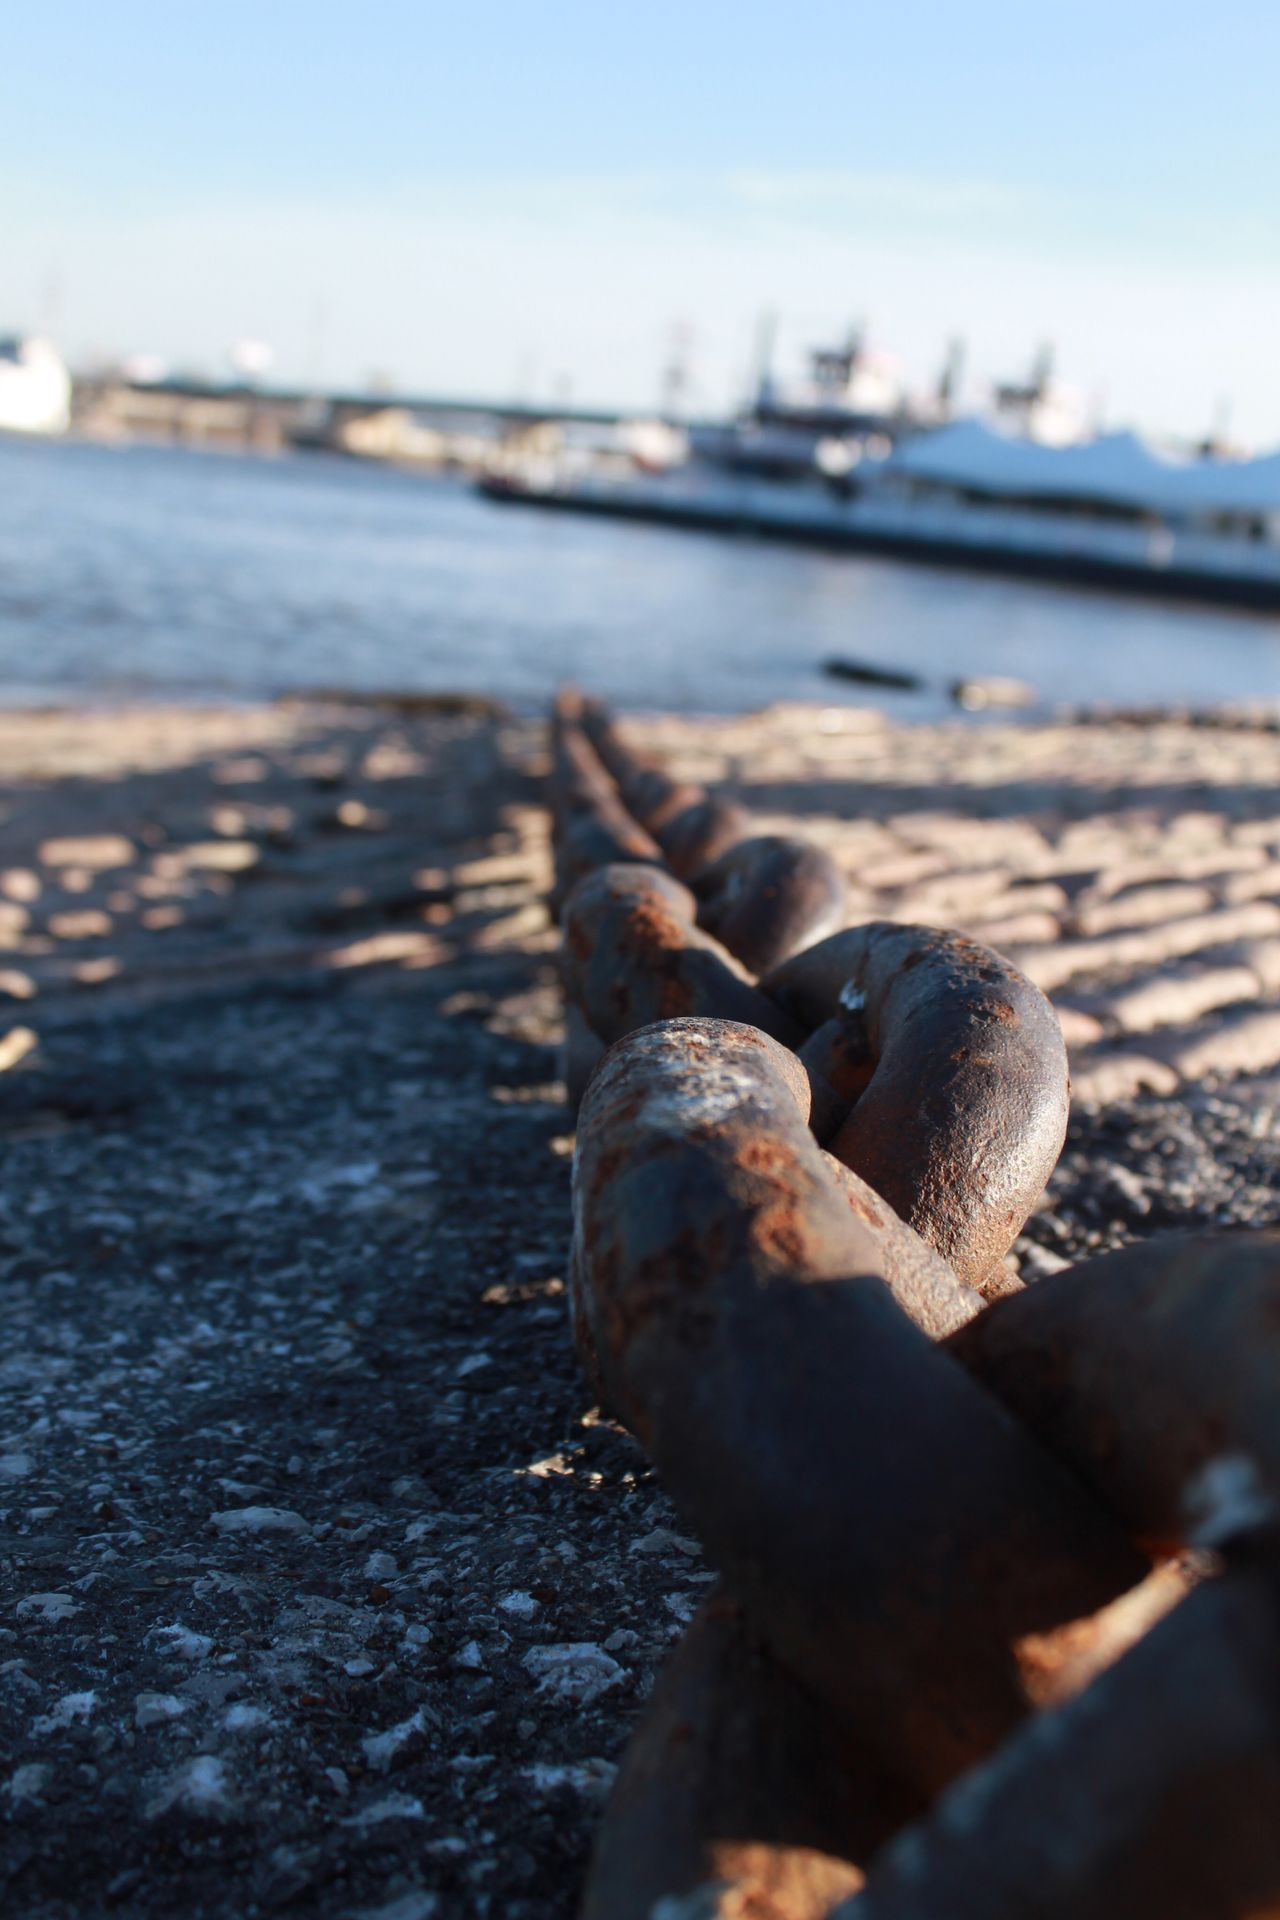 Close Up Outdoors Focus On Foreground Sunlight Close-up Day St Louis Midday Old St Louis Riverfront Landing Lacledes Landing Riverside Chain Boats Boat Anchorage Anchor Bricks Long Rusty Blurred Background BIG Low Shot Low Shots